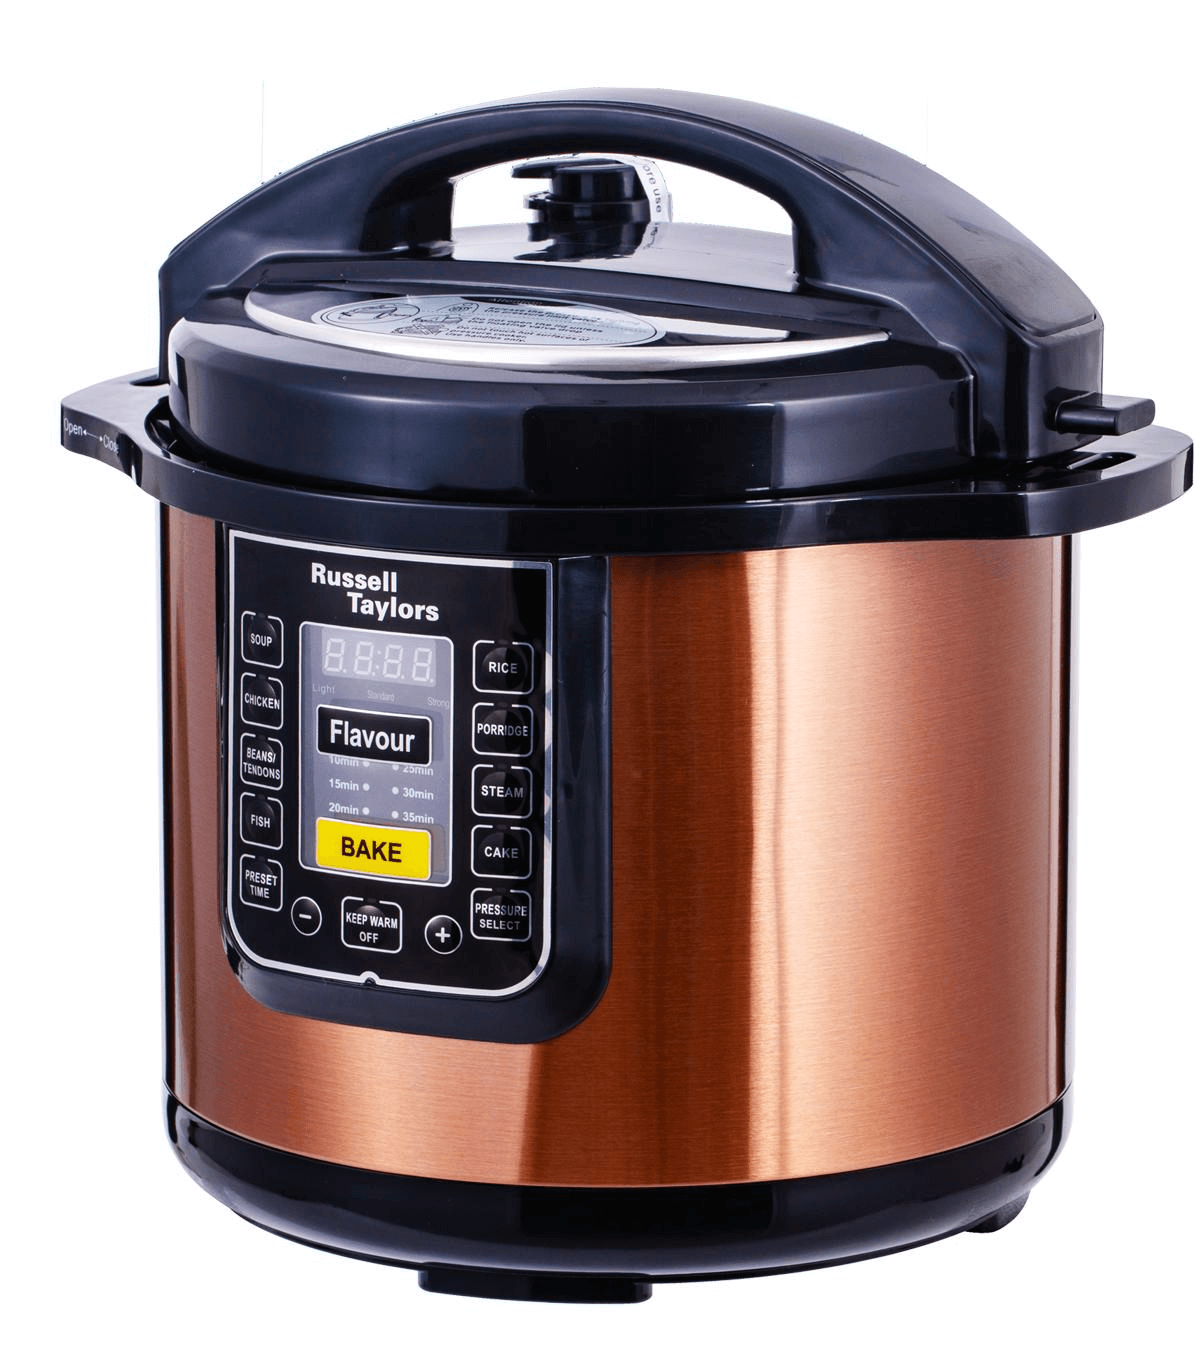 Russell Taylors 8L Electric Pressure Cooker PC-80